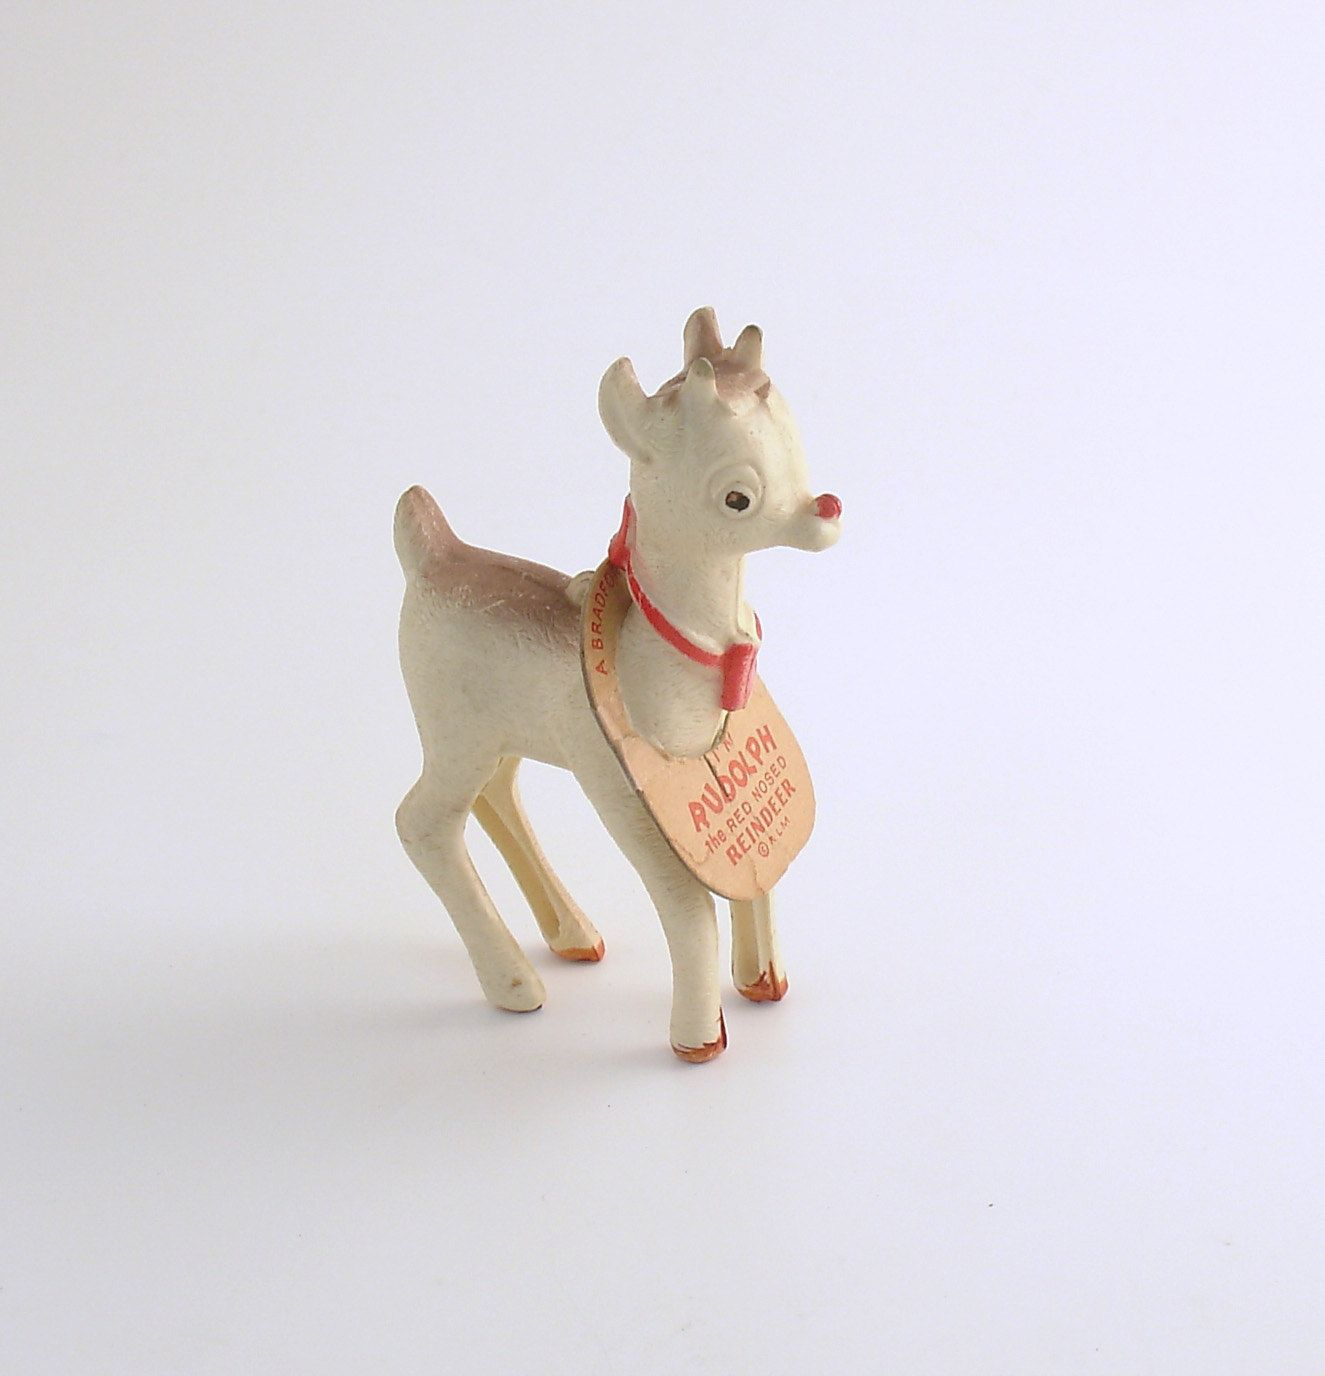 Vintage Christmas Ornament Rudolph the Red Nosed Reindeer Christmas Decoration by efinegifts on Etsy